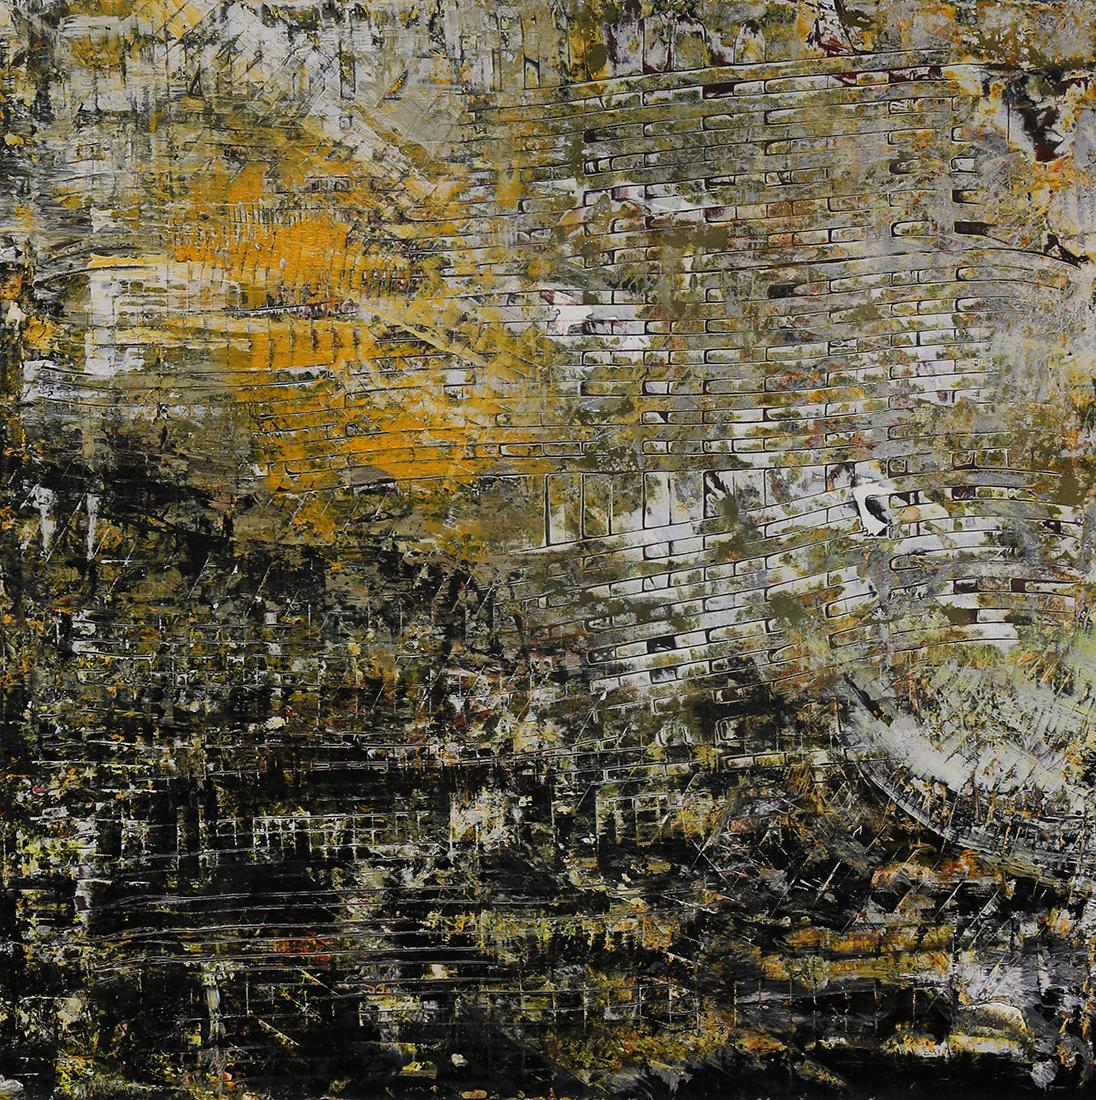 American School Abstract Painting in yellows, grays and white